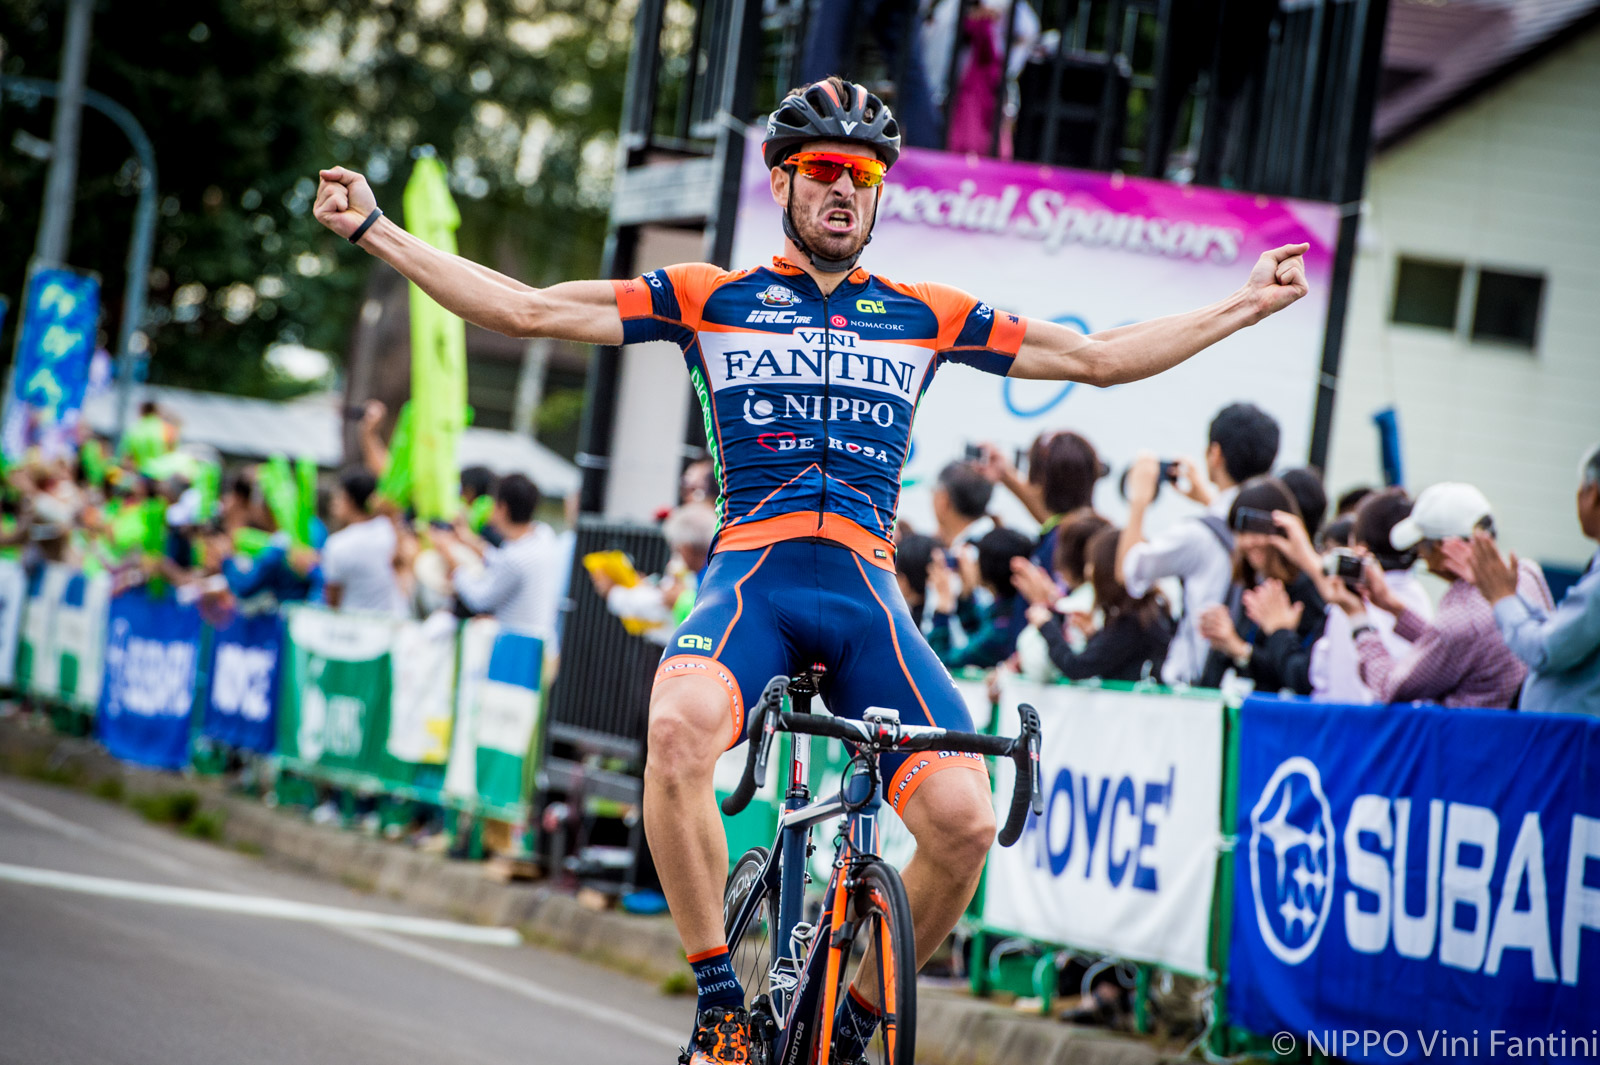 Ciclismo: Riccardo Stacchiotti vince in Giappone